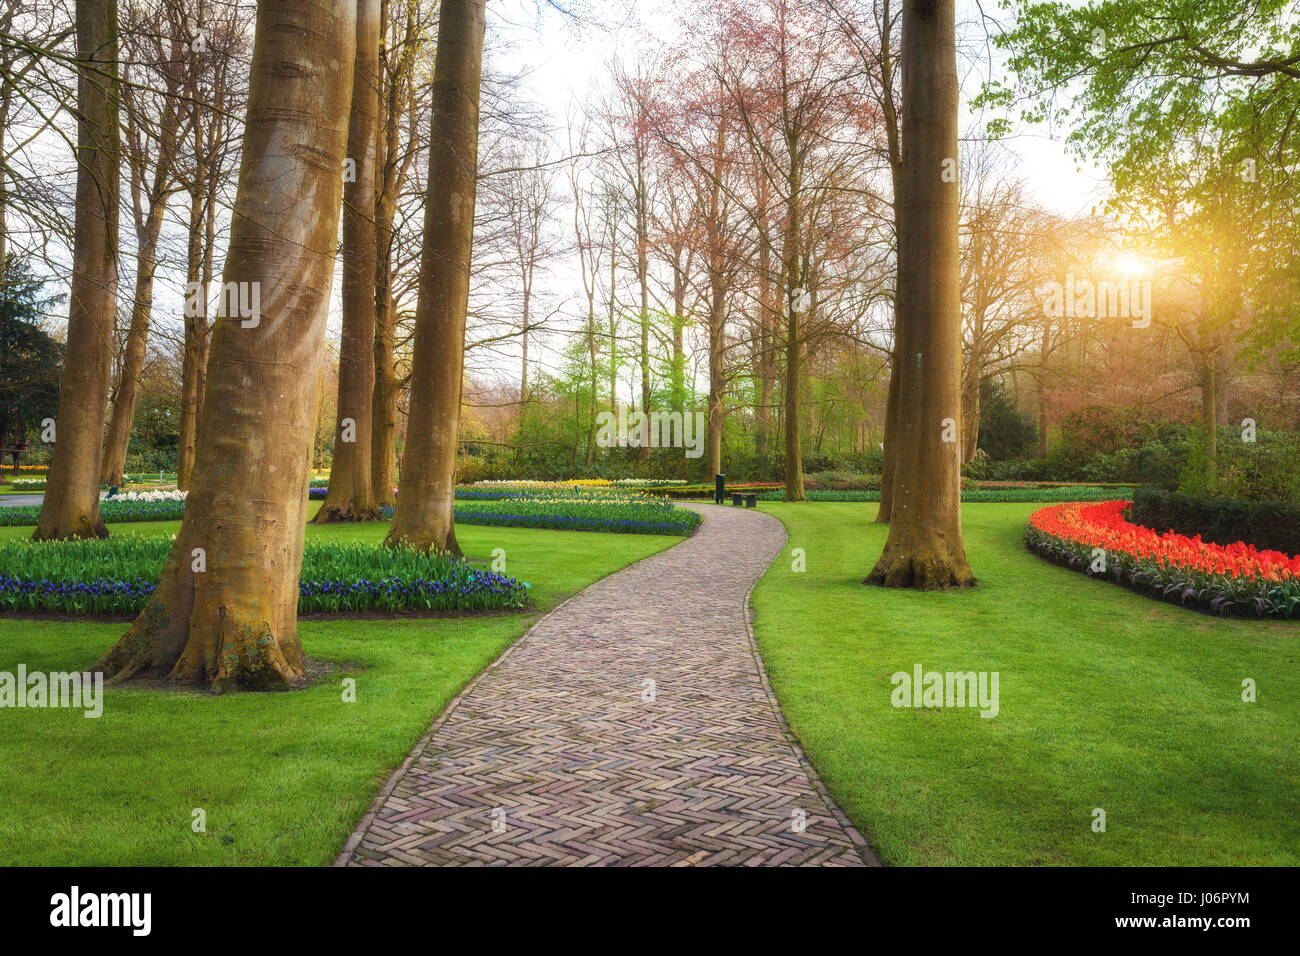 Walkway through the Keukenhof park in Netherlands at sunset. Landscape with blooming spring garden. Beautiful scene - Stock Image